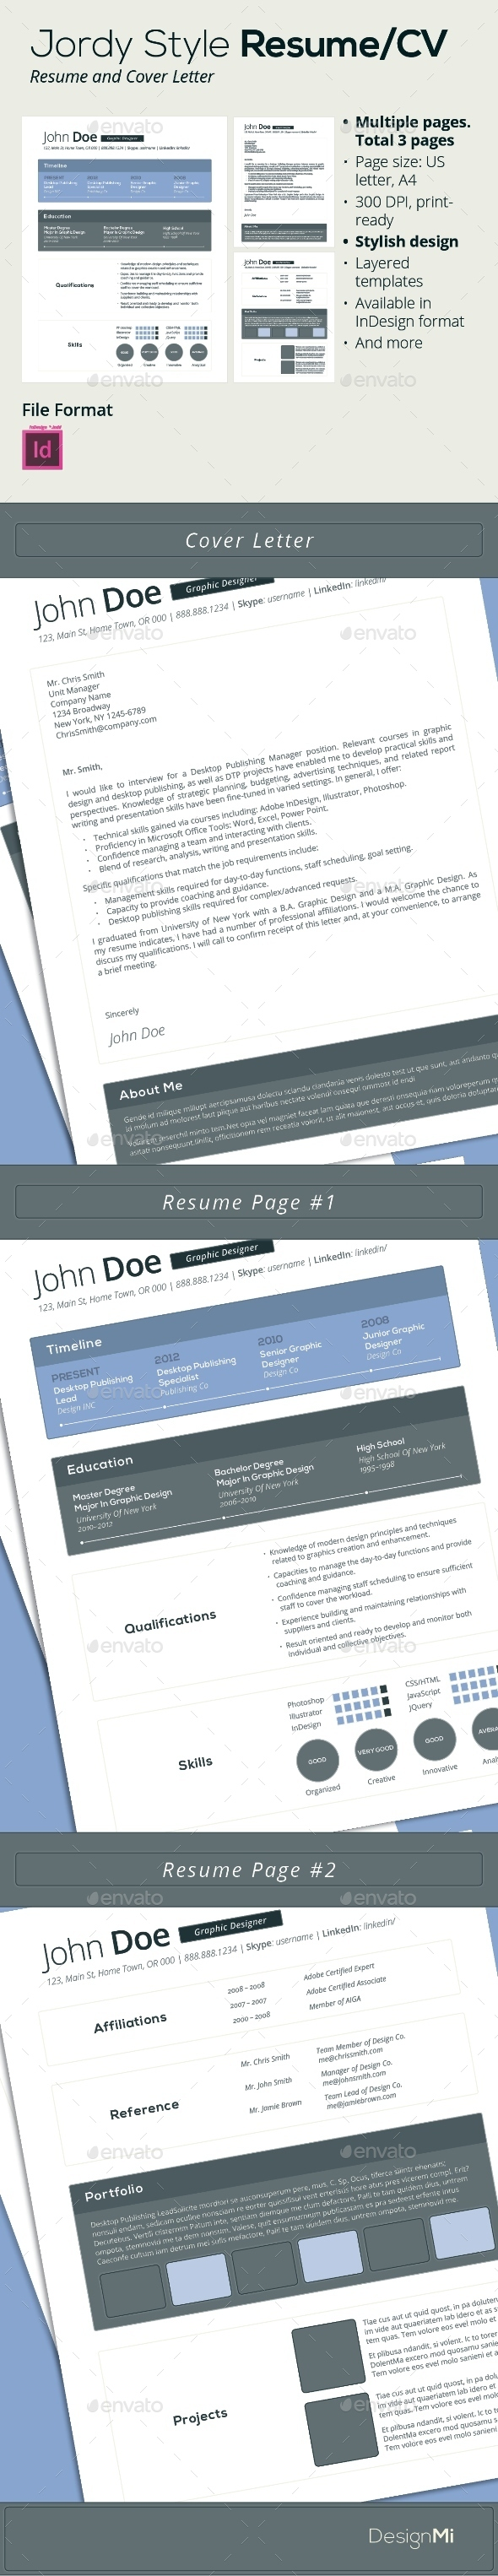 GraphicRiver Jordy Style Resume CV 3 pages 9266994